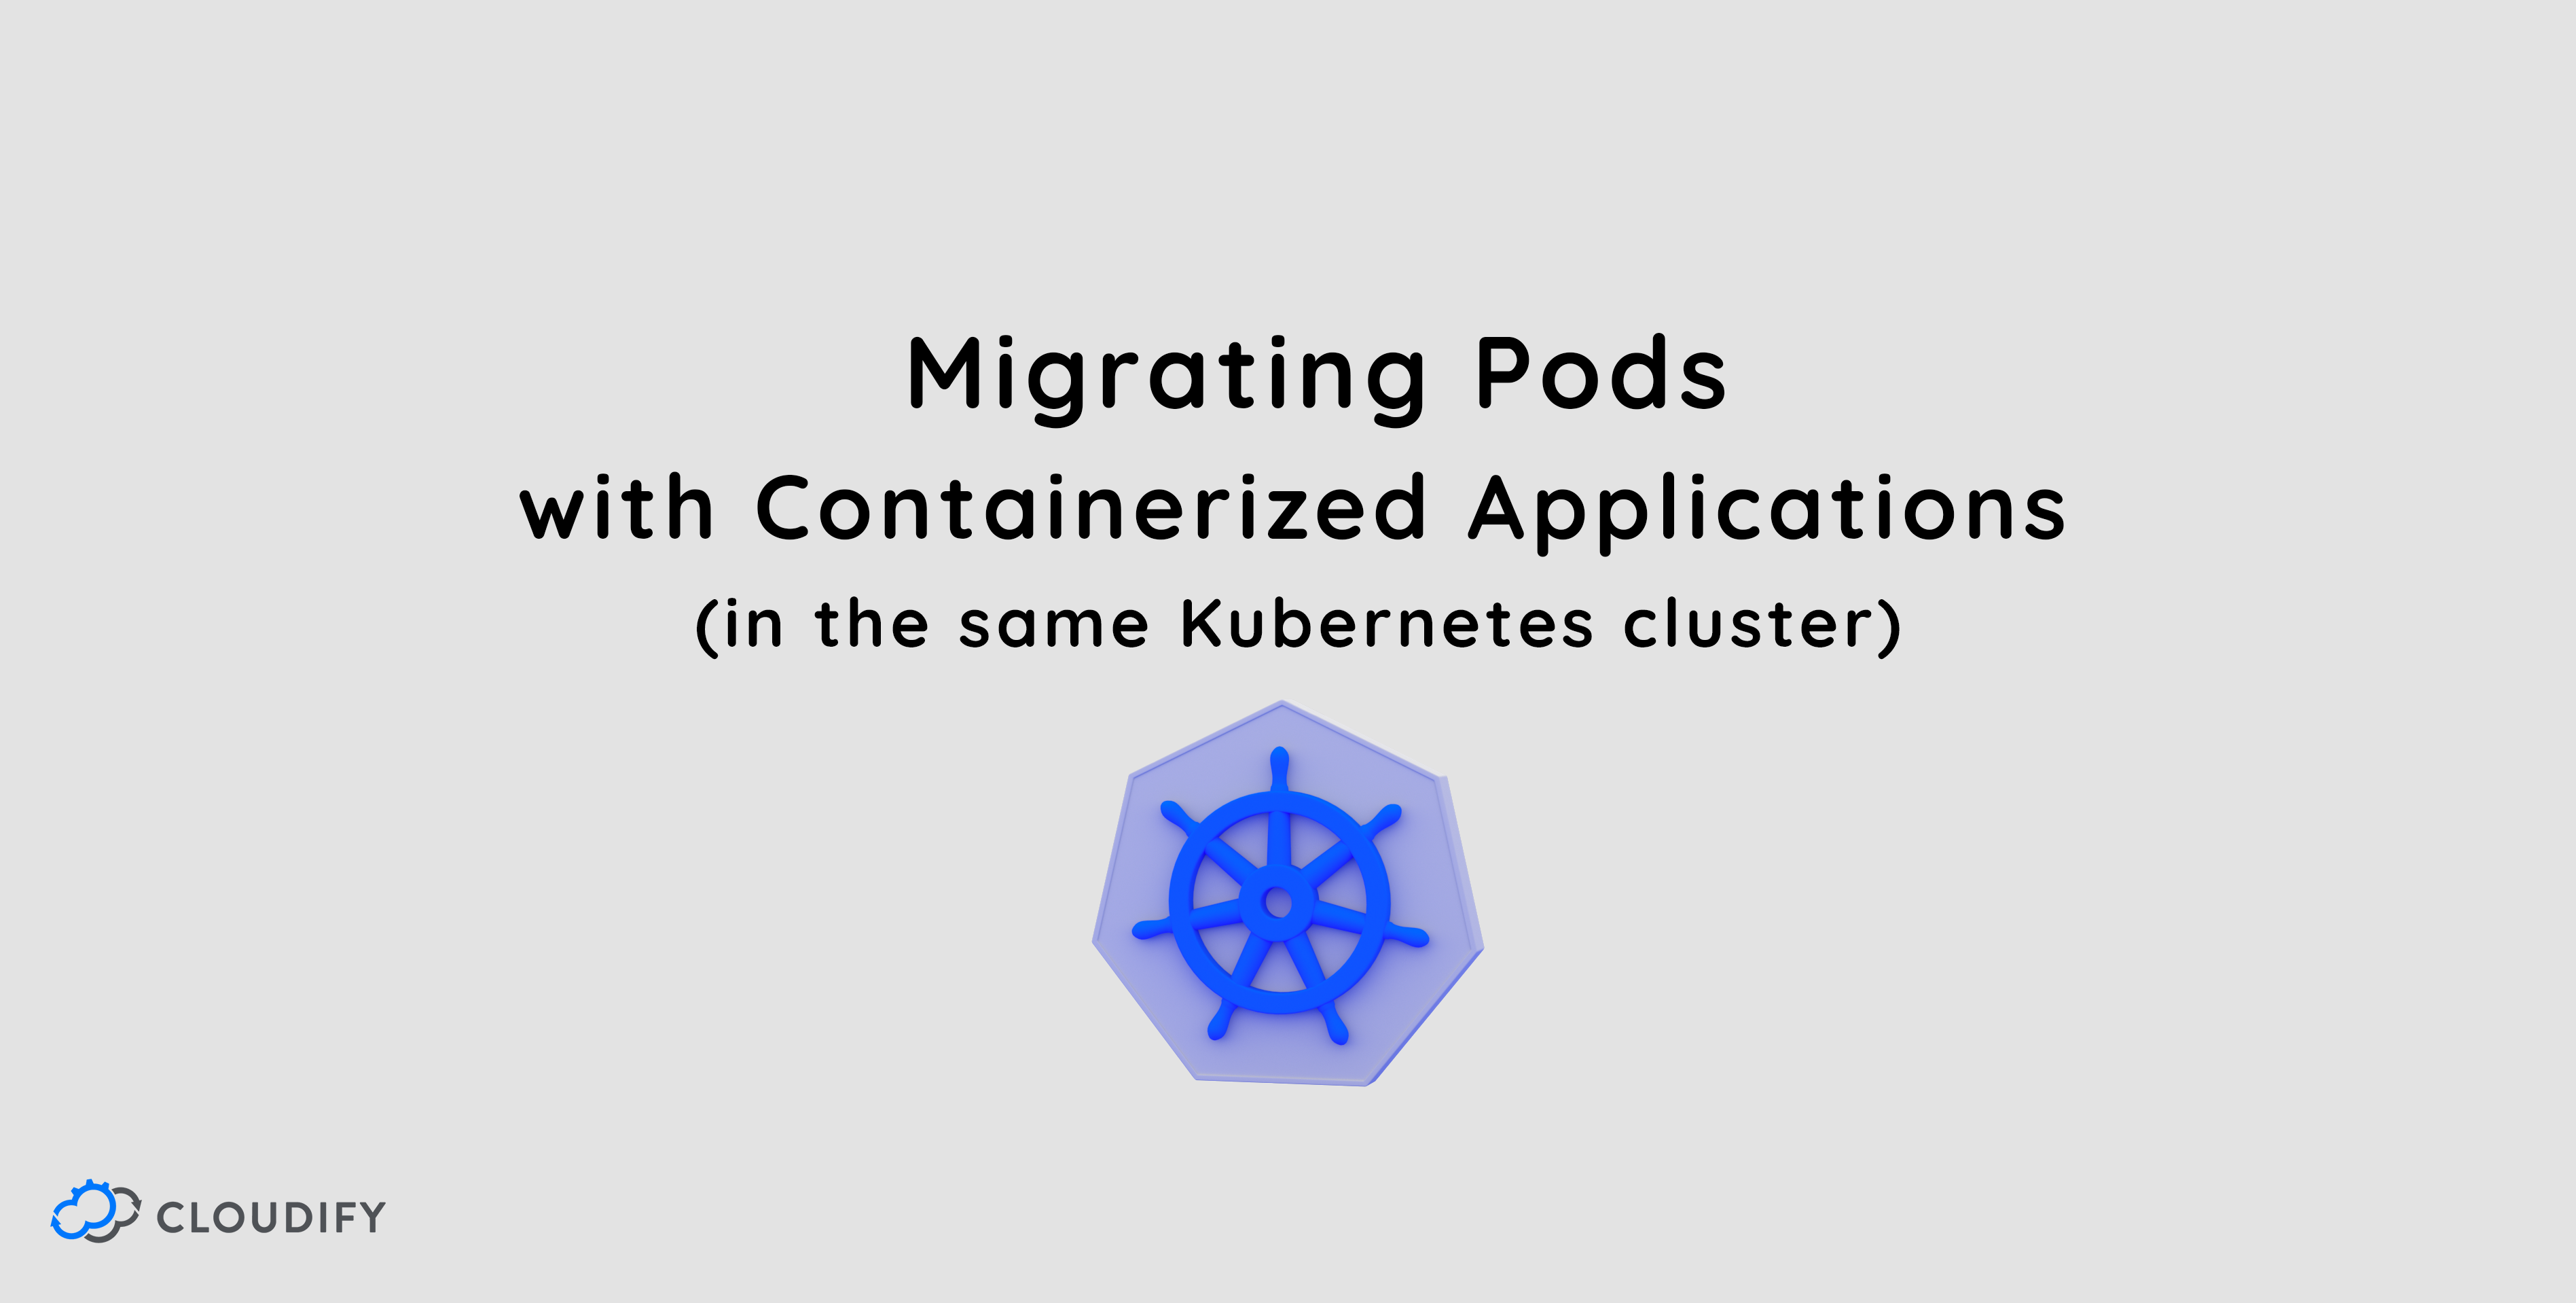 Migrating Pods With Containerized Applications Between Nodes In The Same Kubernetes Cluster Using Cloudify